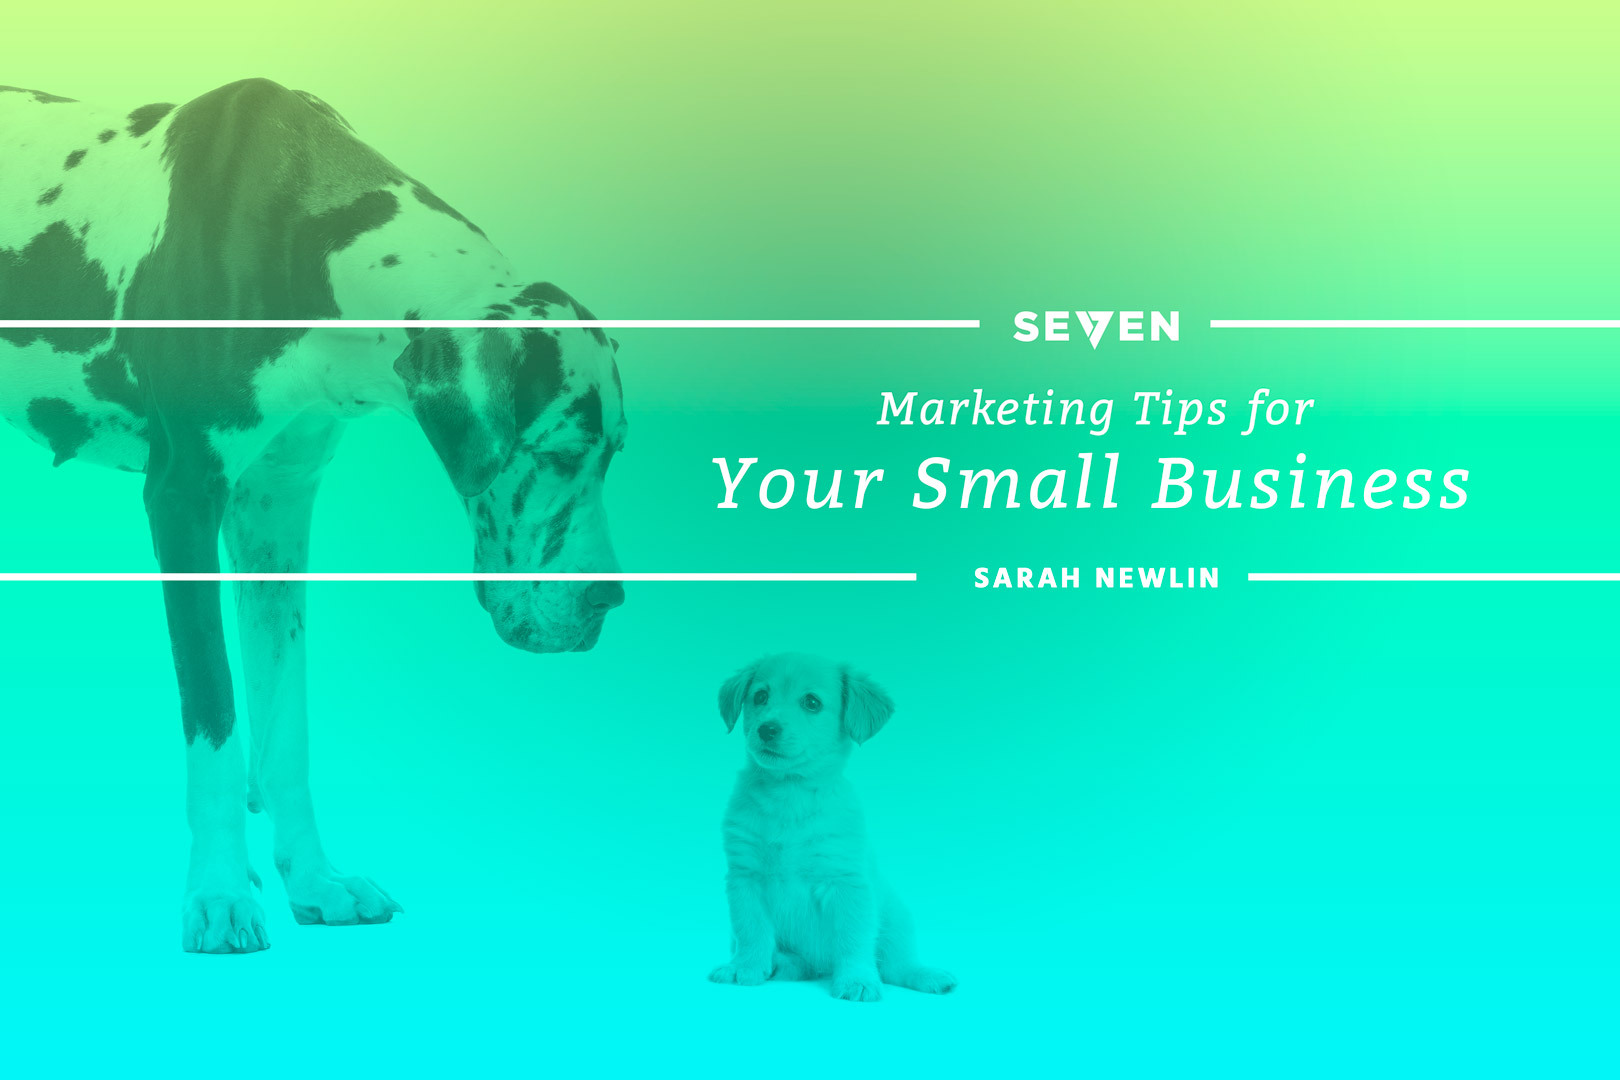 Marketing Tips for Your Small Business